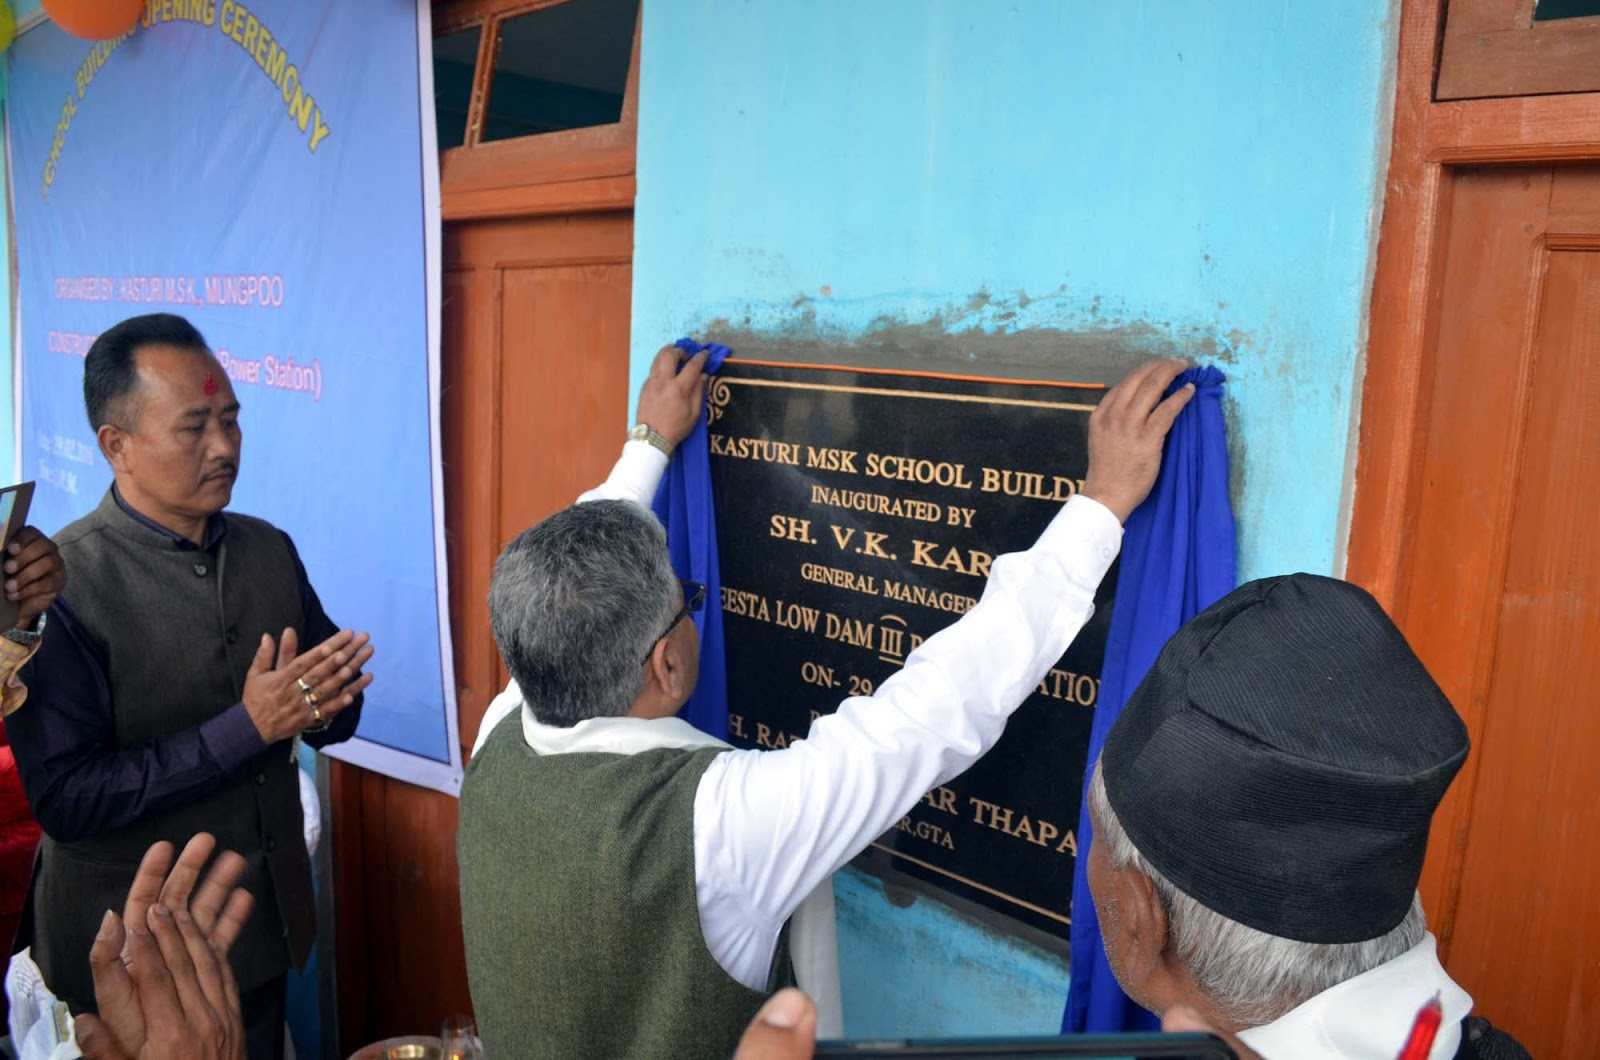 NHPC general Manager V.K Karn inaugurating Kasturi MSK building